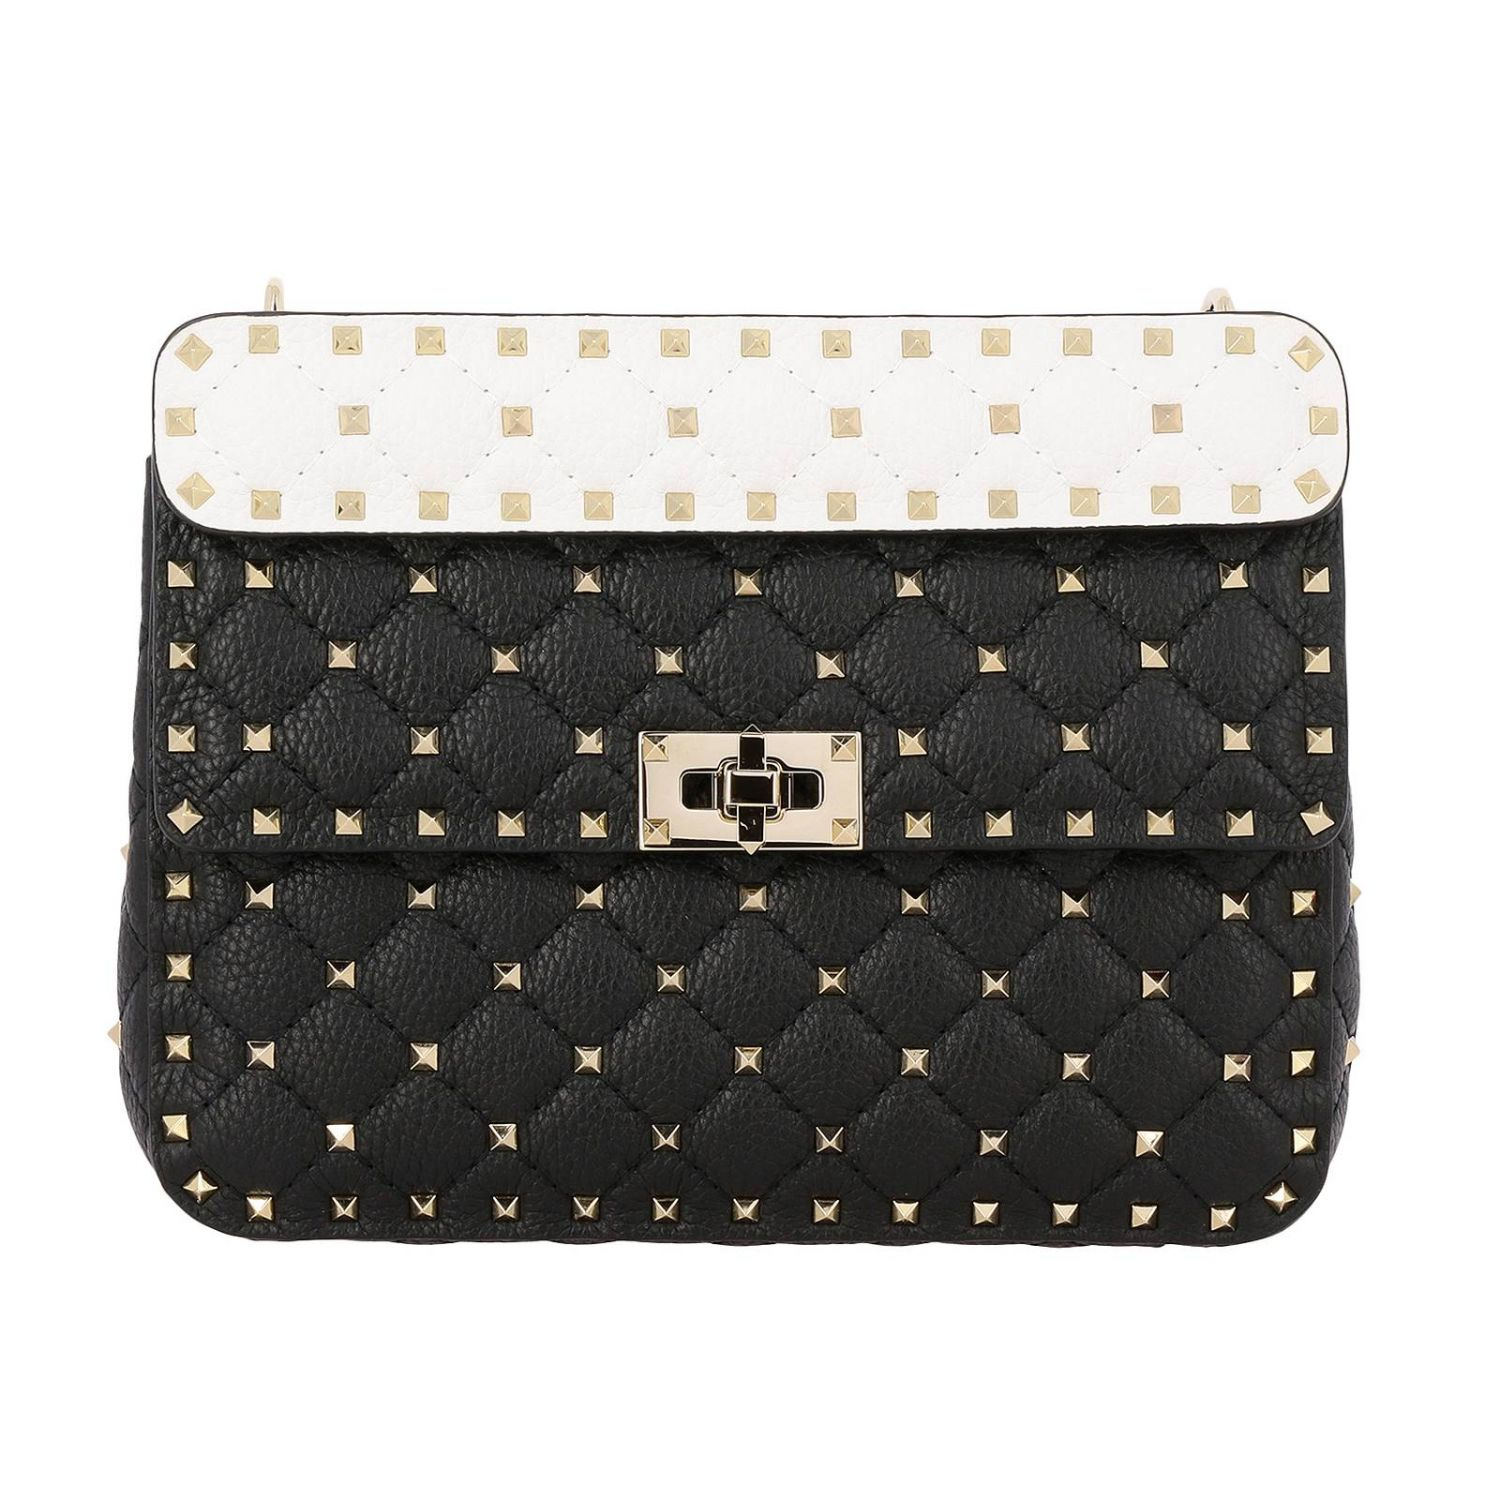 Rockstud Spike quilted leather bag with removable handle and shoulder strap black 1